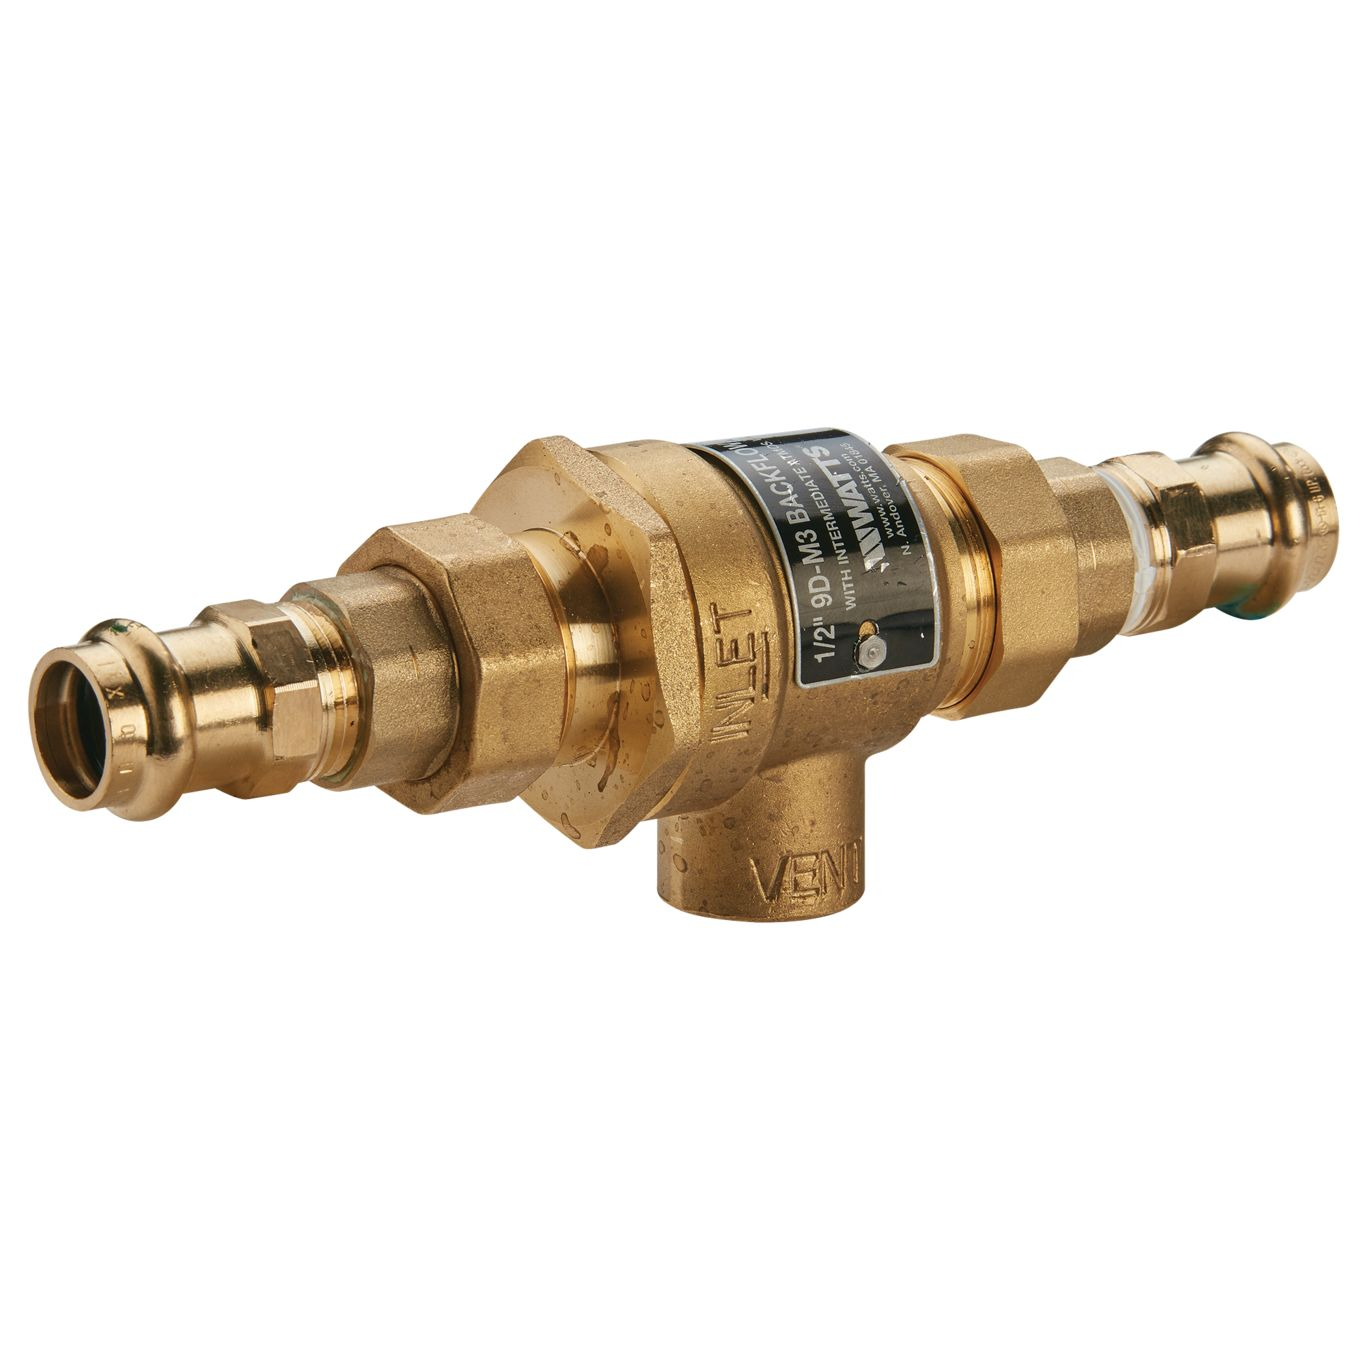 WATTS HAV 1//4 Automatic Vent For Hot Water,1//4In,Brass